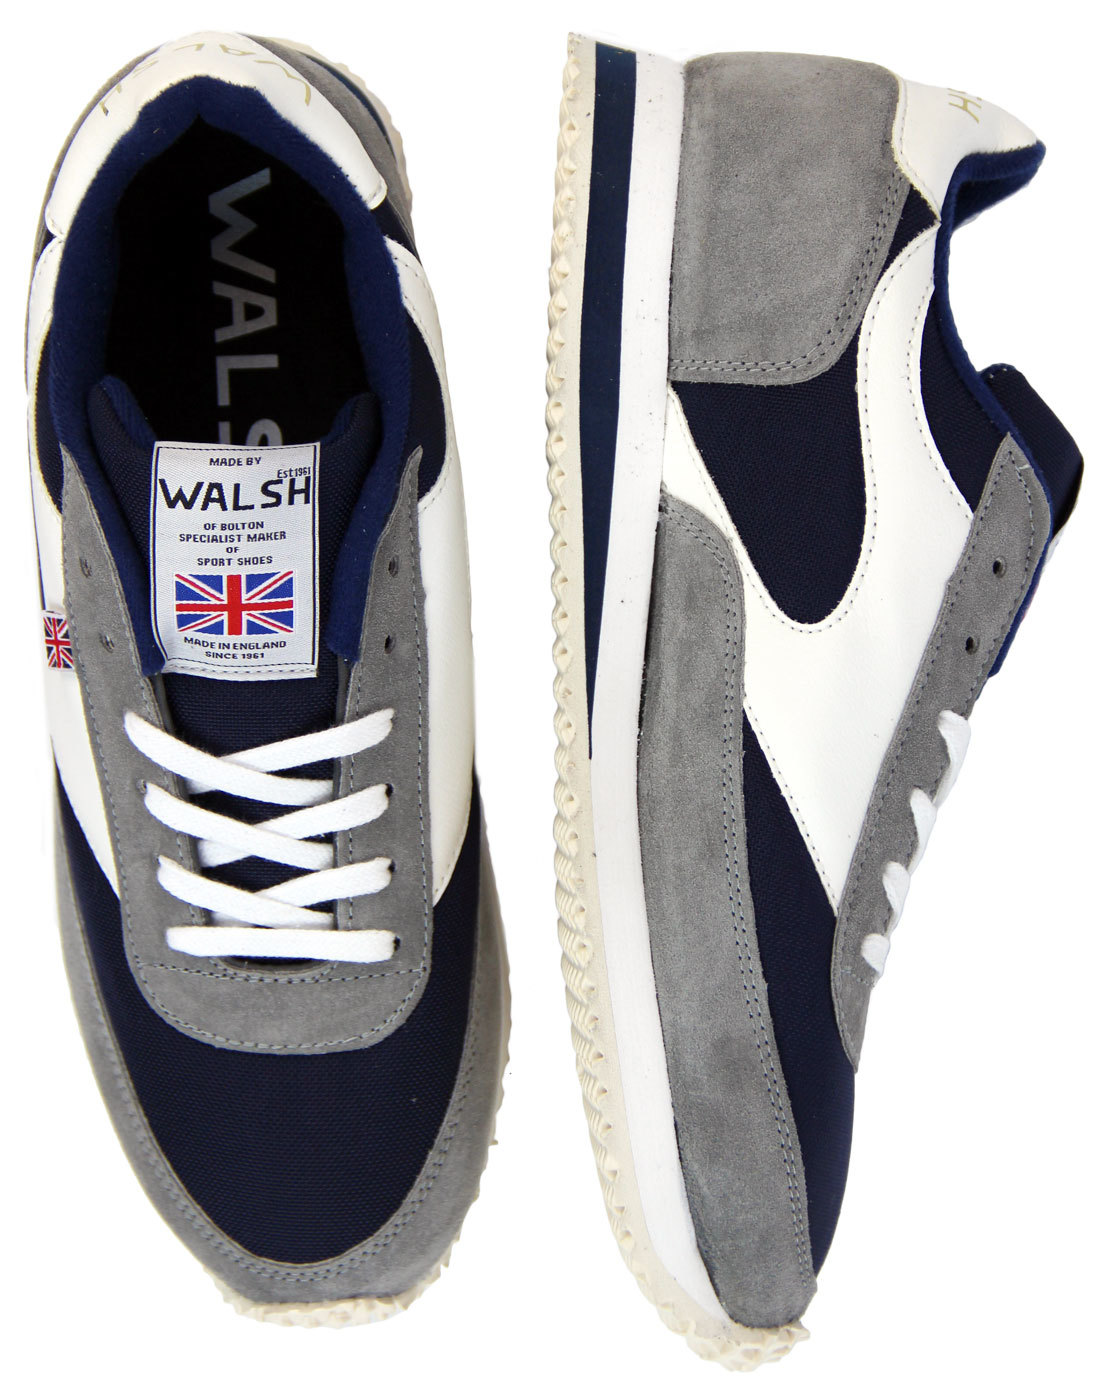 LA 84 WALSH Made In England Retro Trainers (N/G/W)